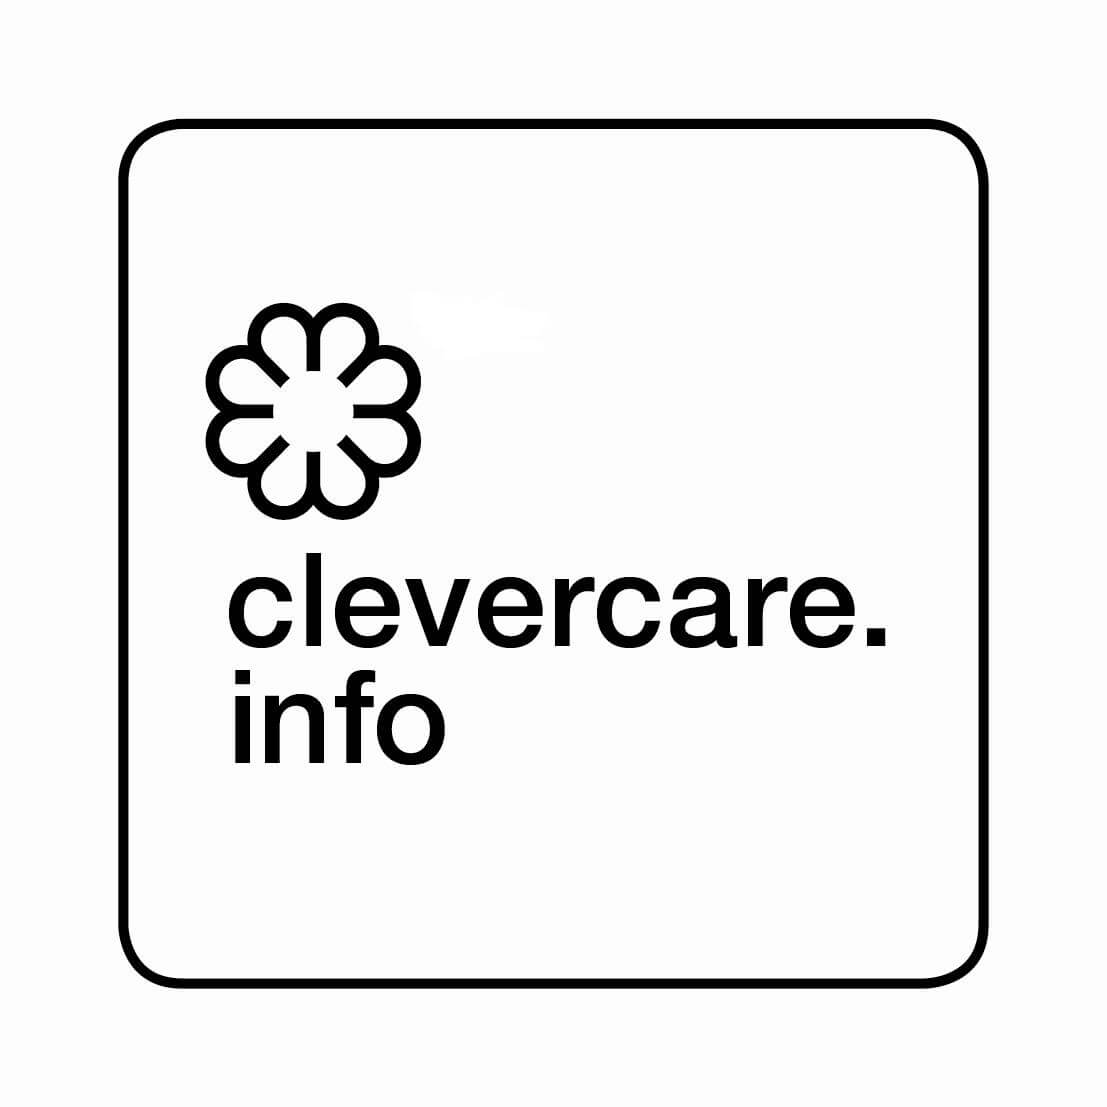 Clevercare.info logo